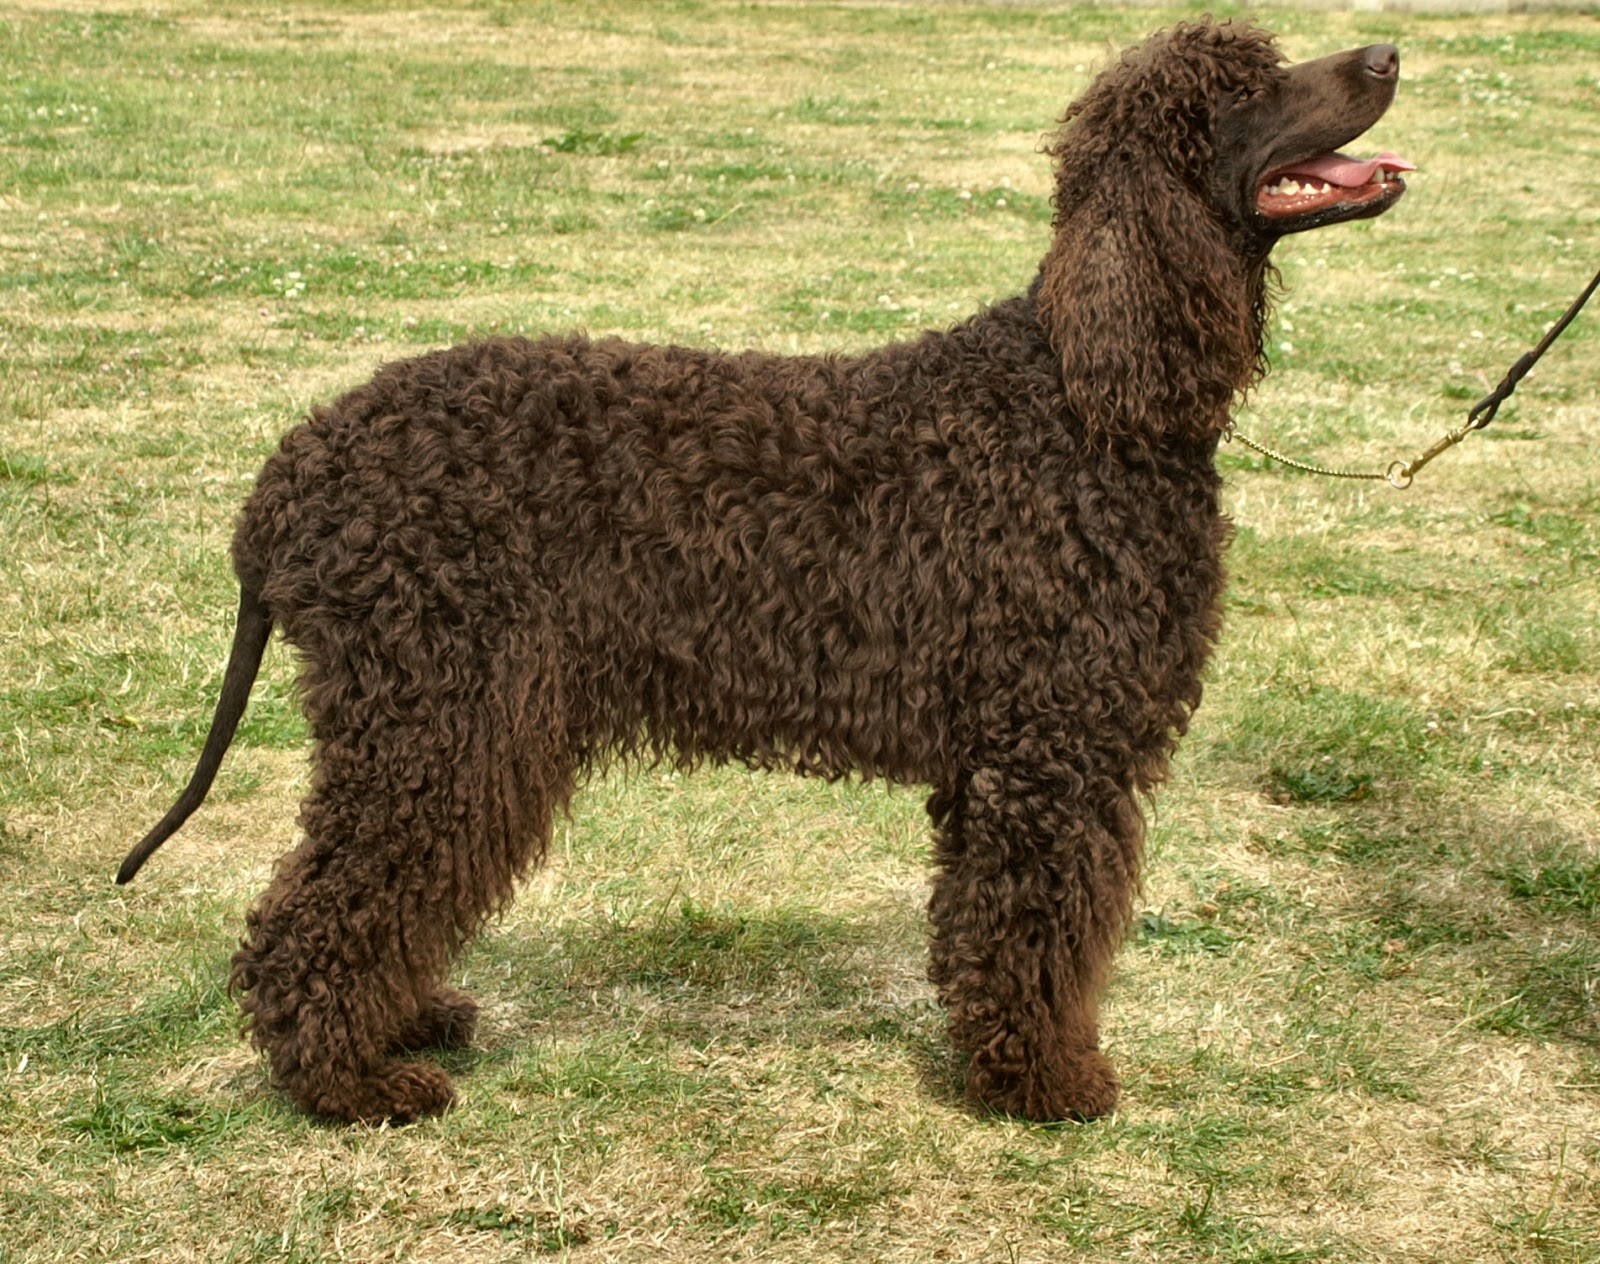 Bonny Irish Water Spaniel dog  wallpaper